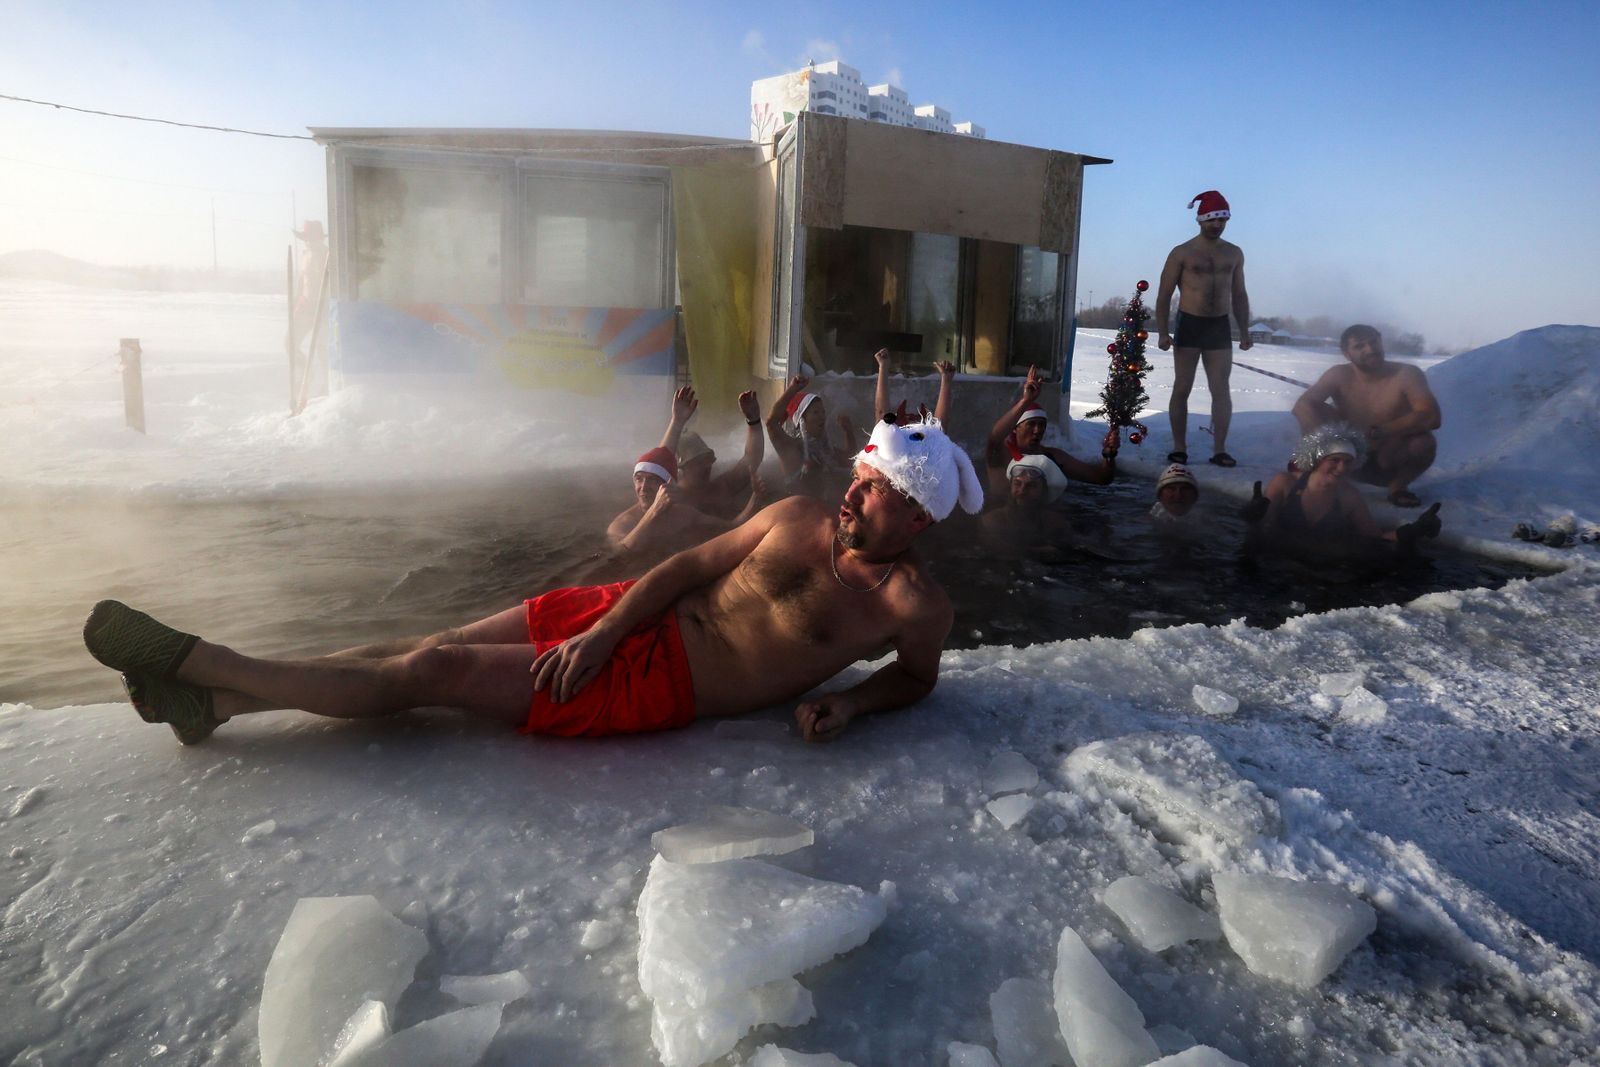 RUSSIA-DAILY LIFE-SWIM-WEATHER-ICE